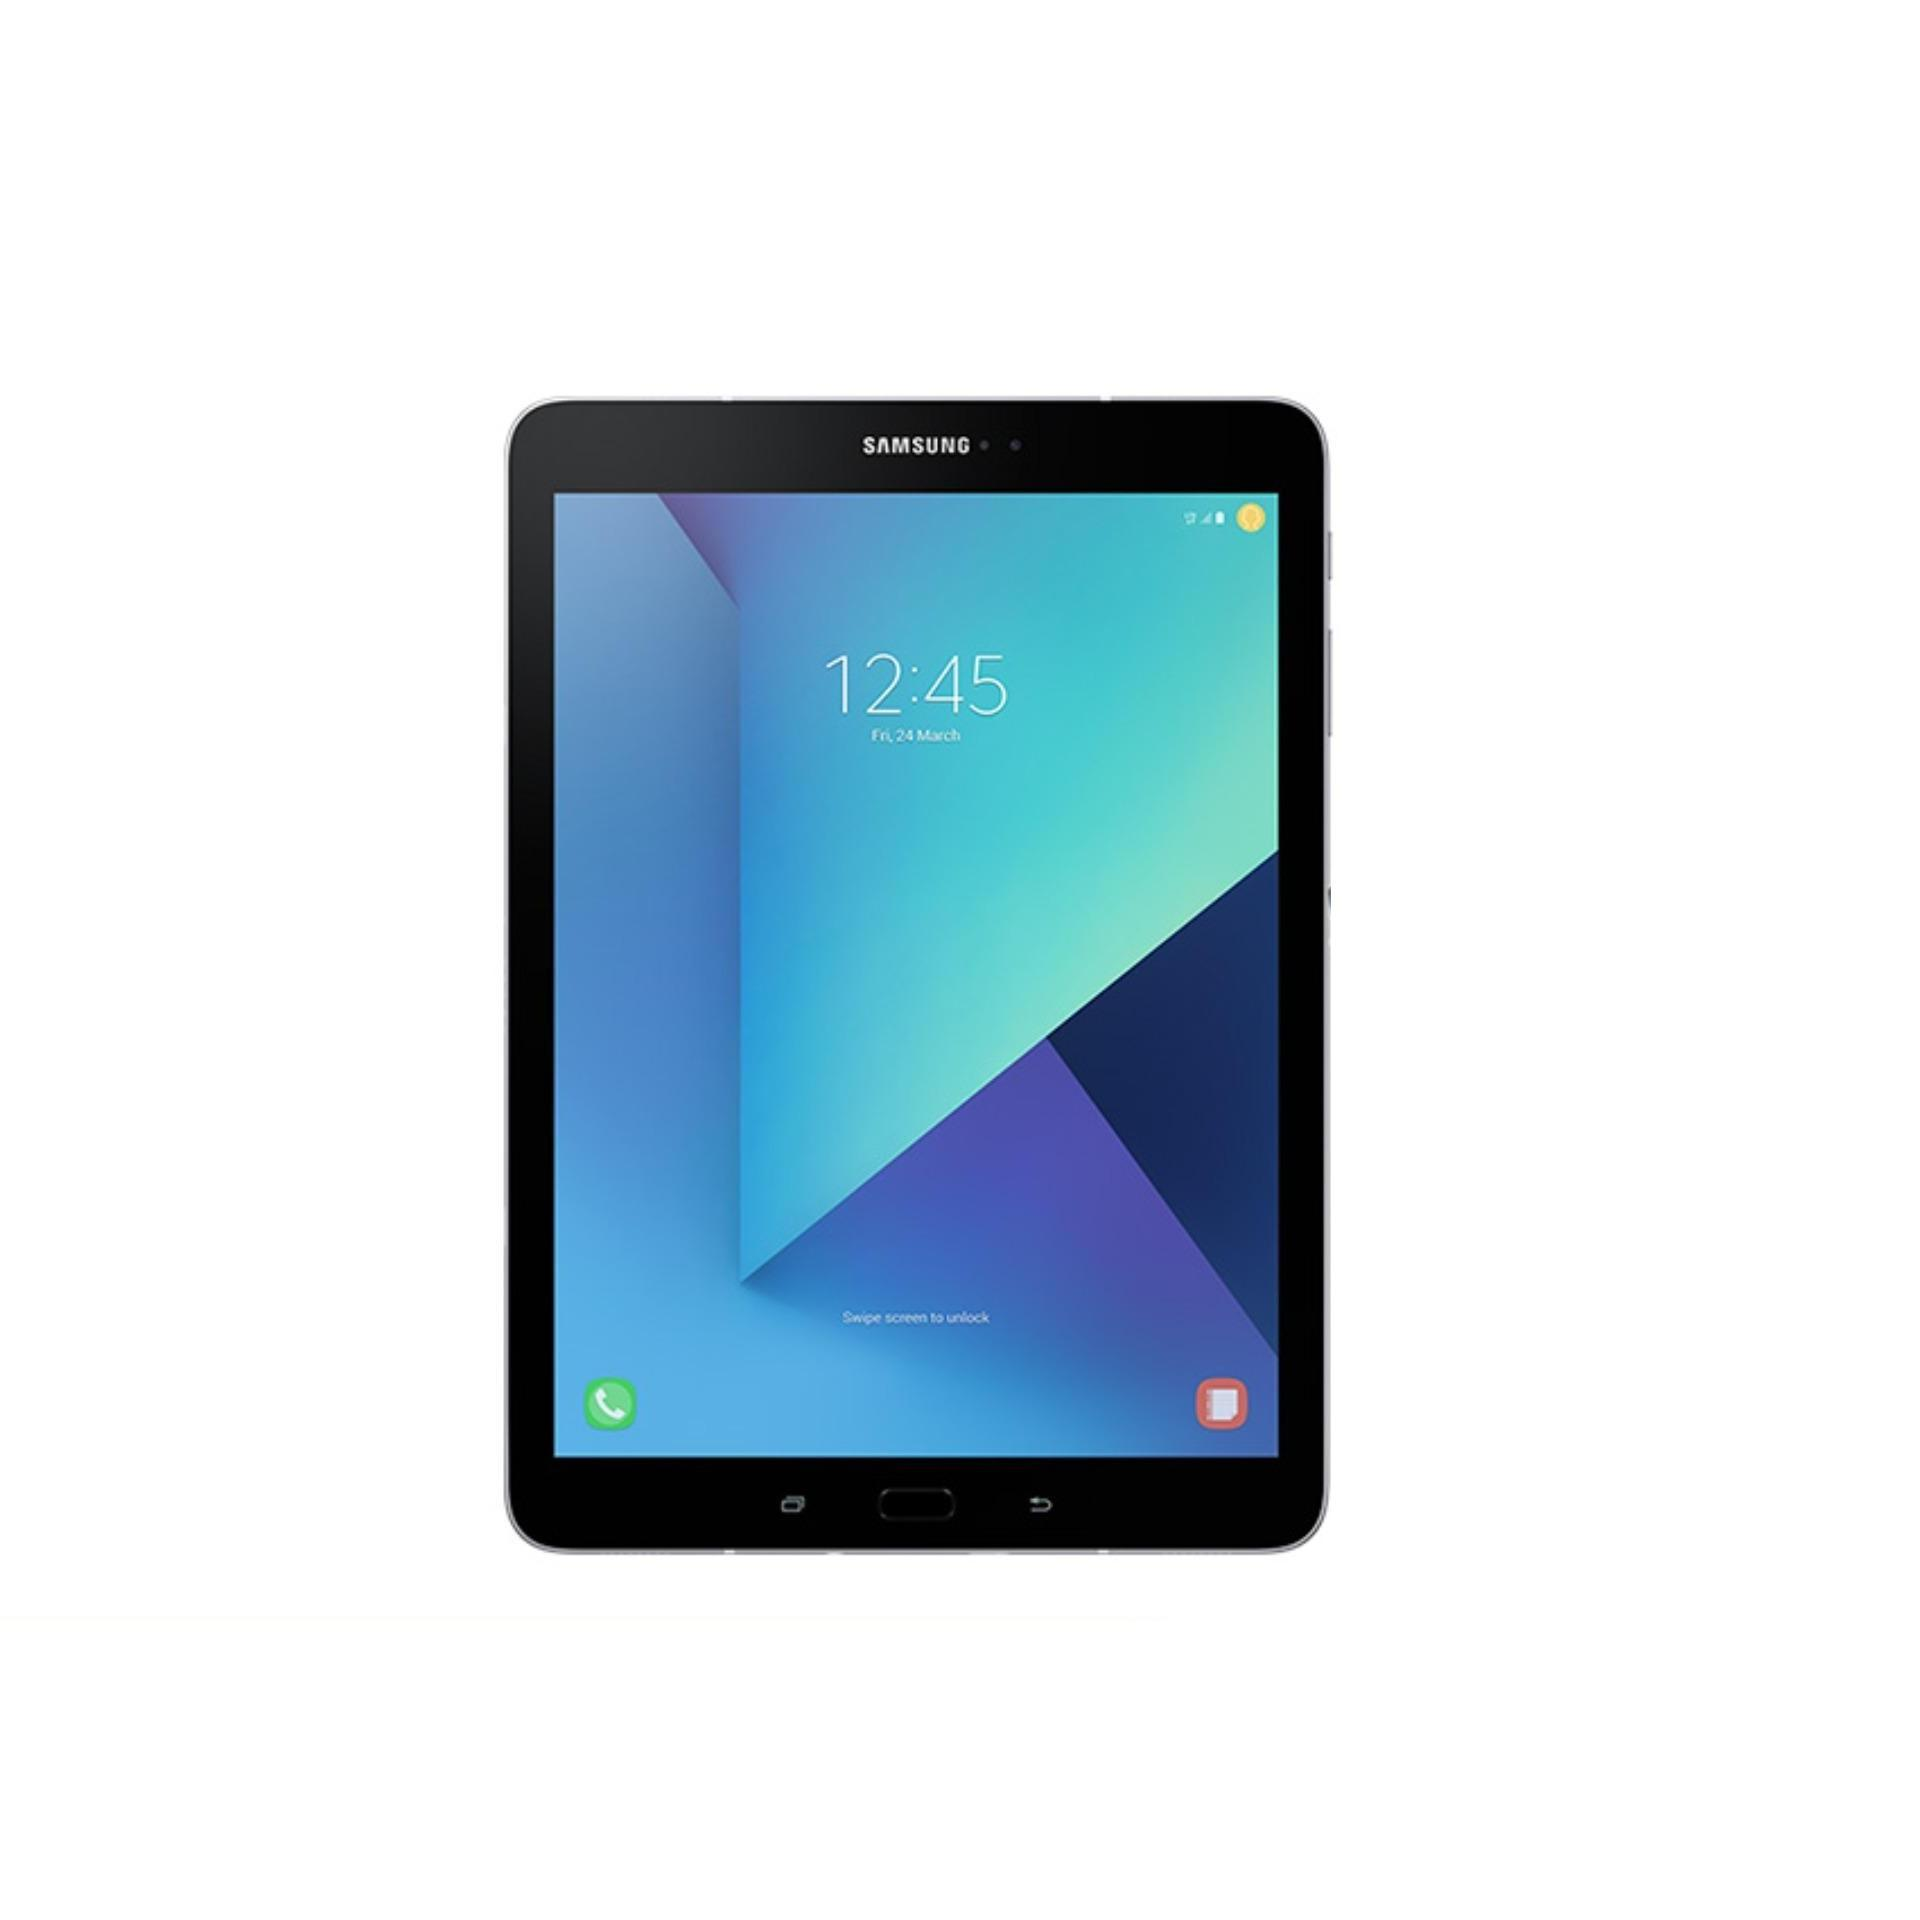 Samsung Philippines List Tv Phones Tablet Samsung Z2 Hp Murah Dibawah 1 Juta